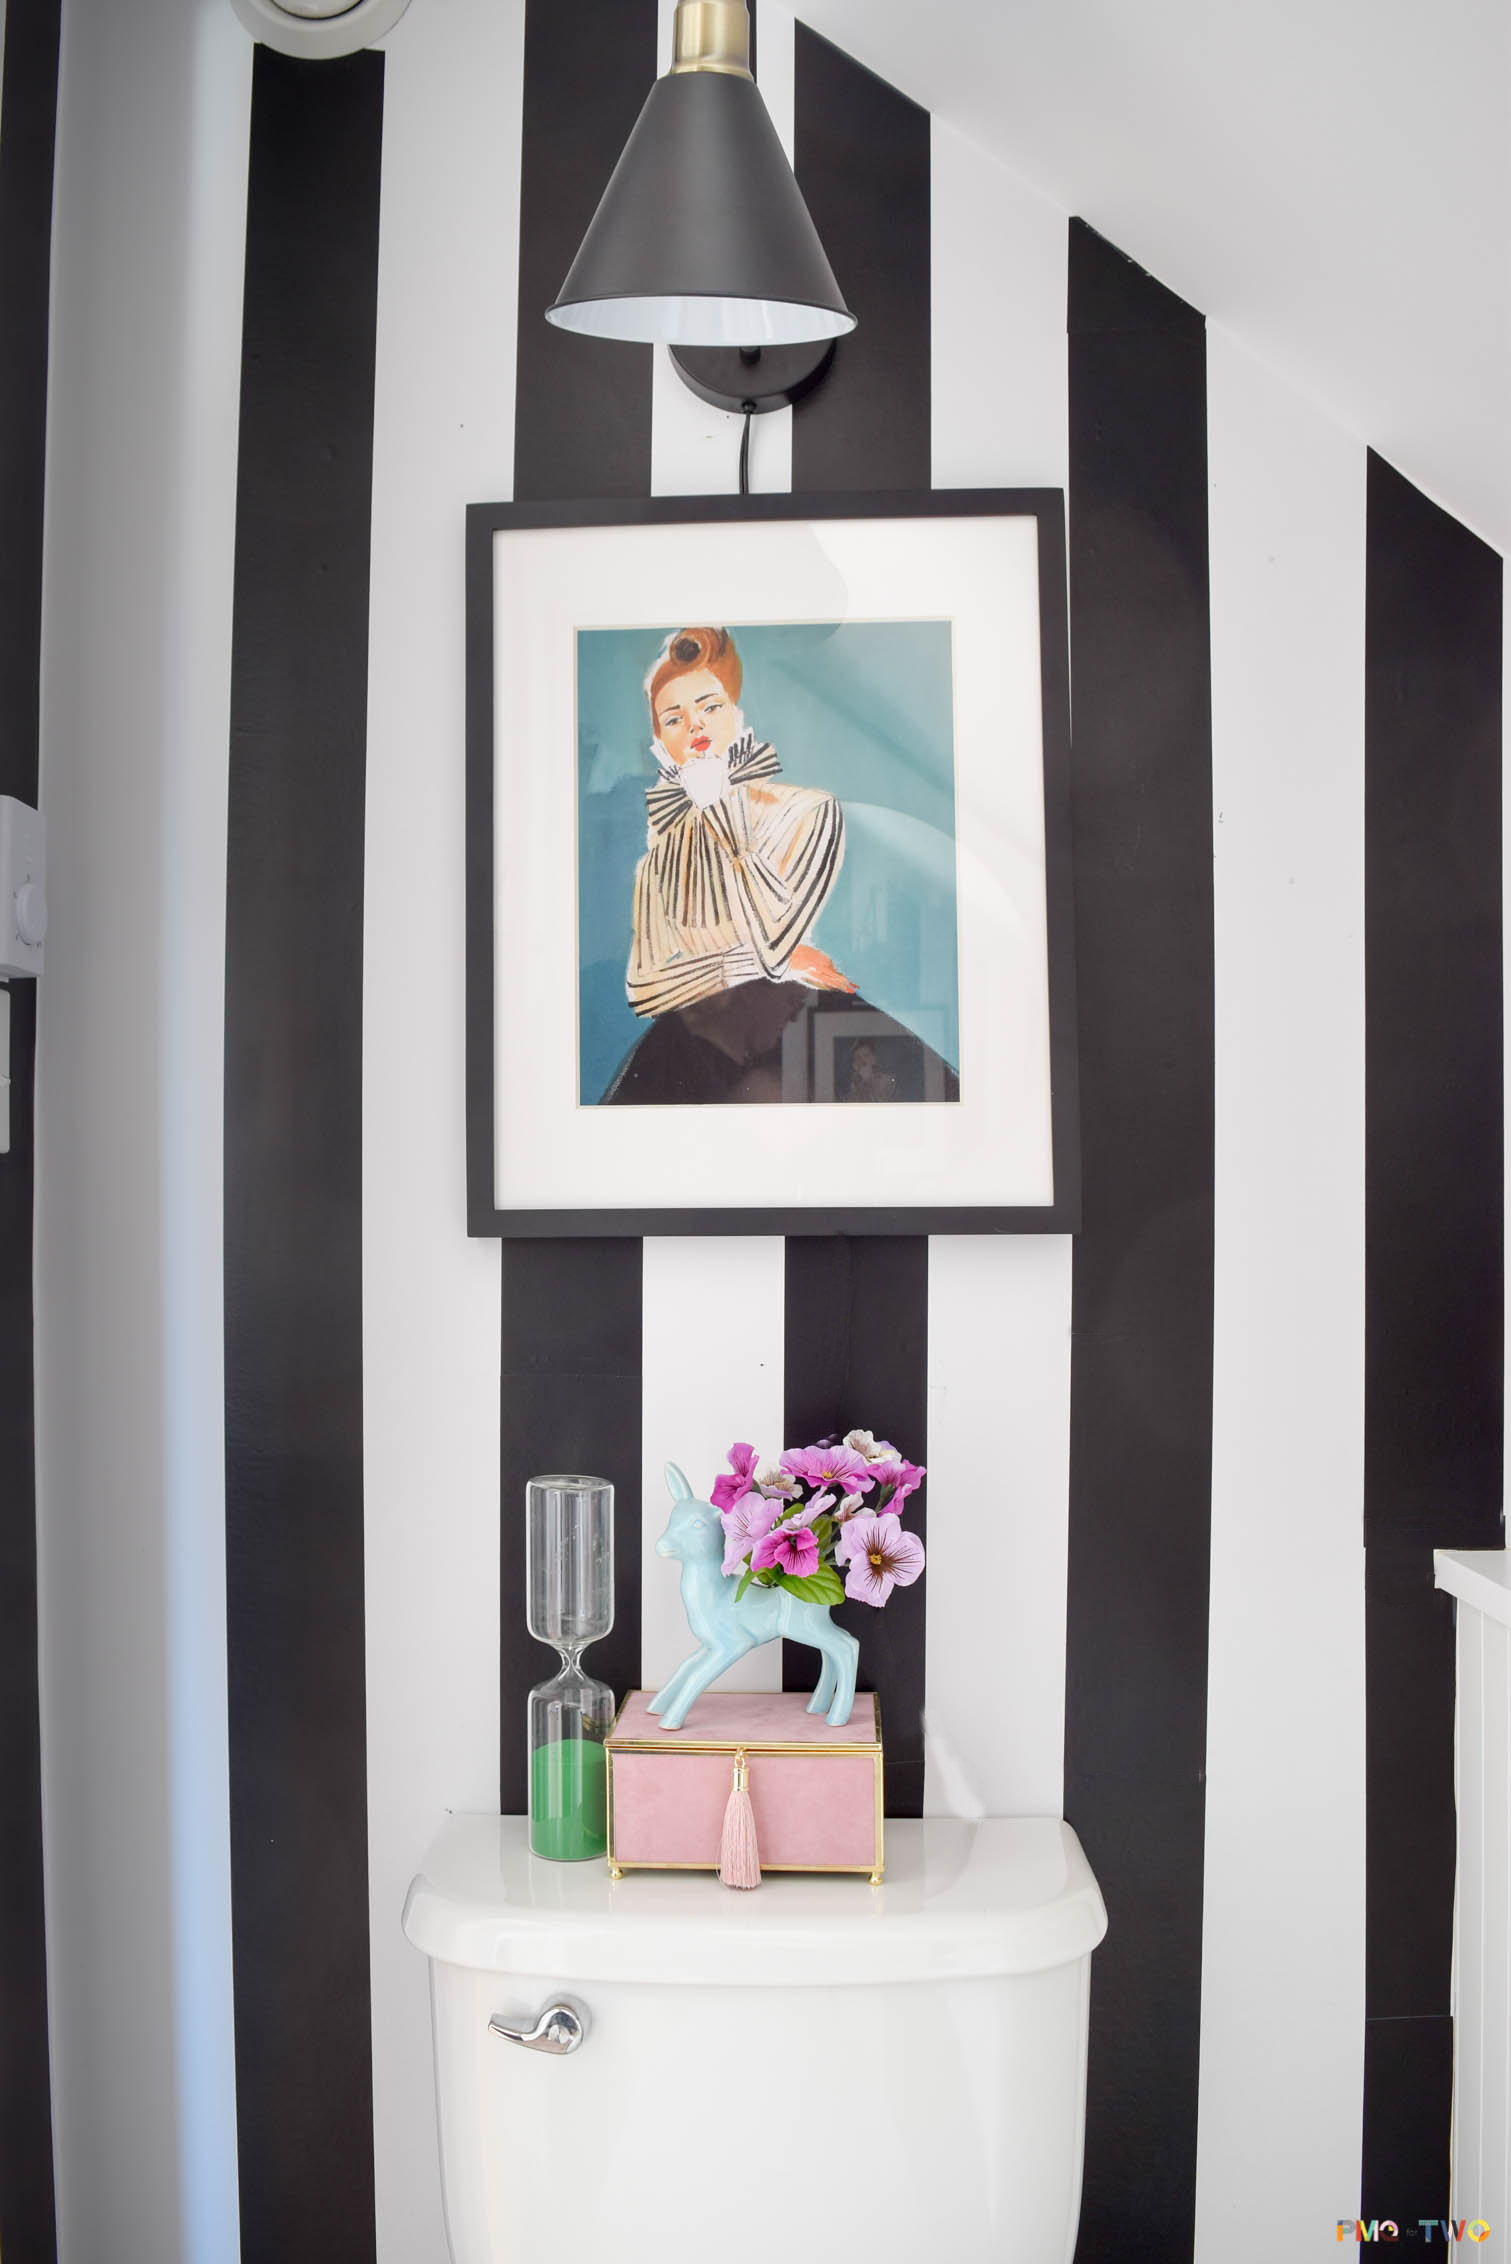 Bring a little razzle dazzle to your bathroom with this Kate Spade inspired powder room makevoer. With the right accessories - all is transformed. Grab yourself some removable wallpaper to create vertical black and white stripes, an articulated sconce for sexy lighting, and tons of great brass hardware are the key to this space.